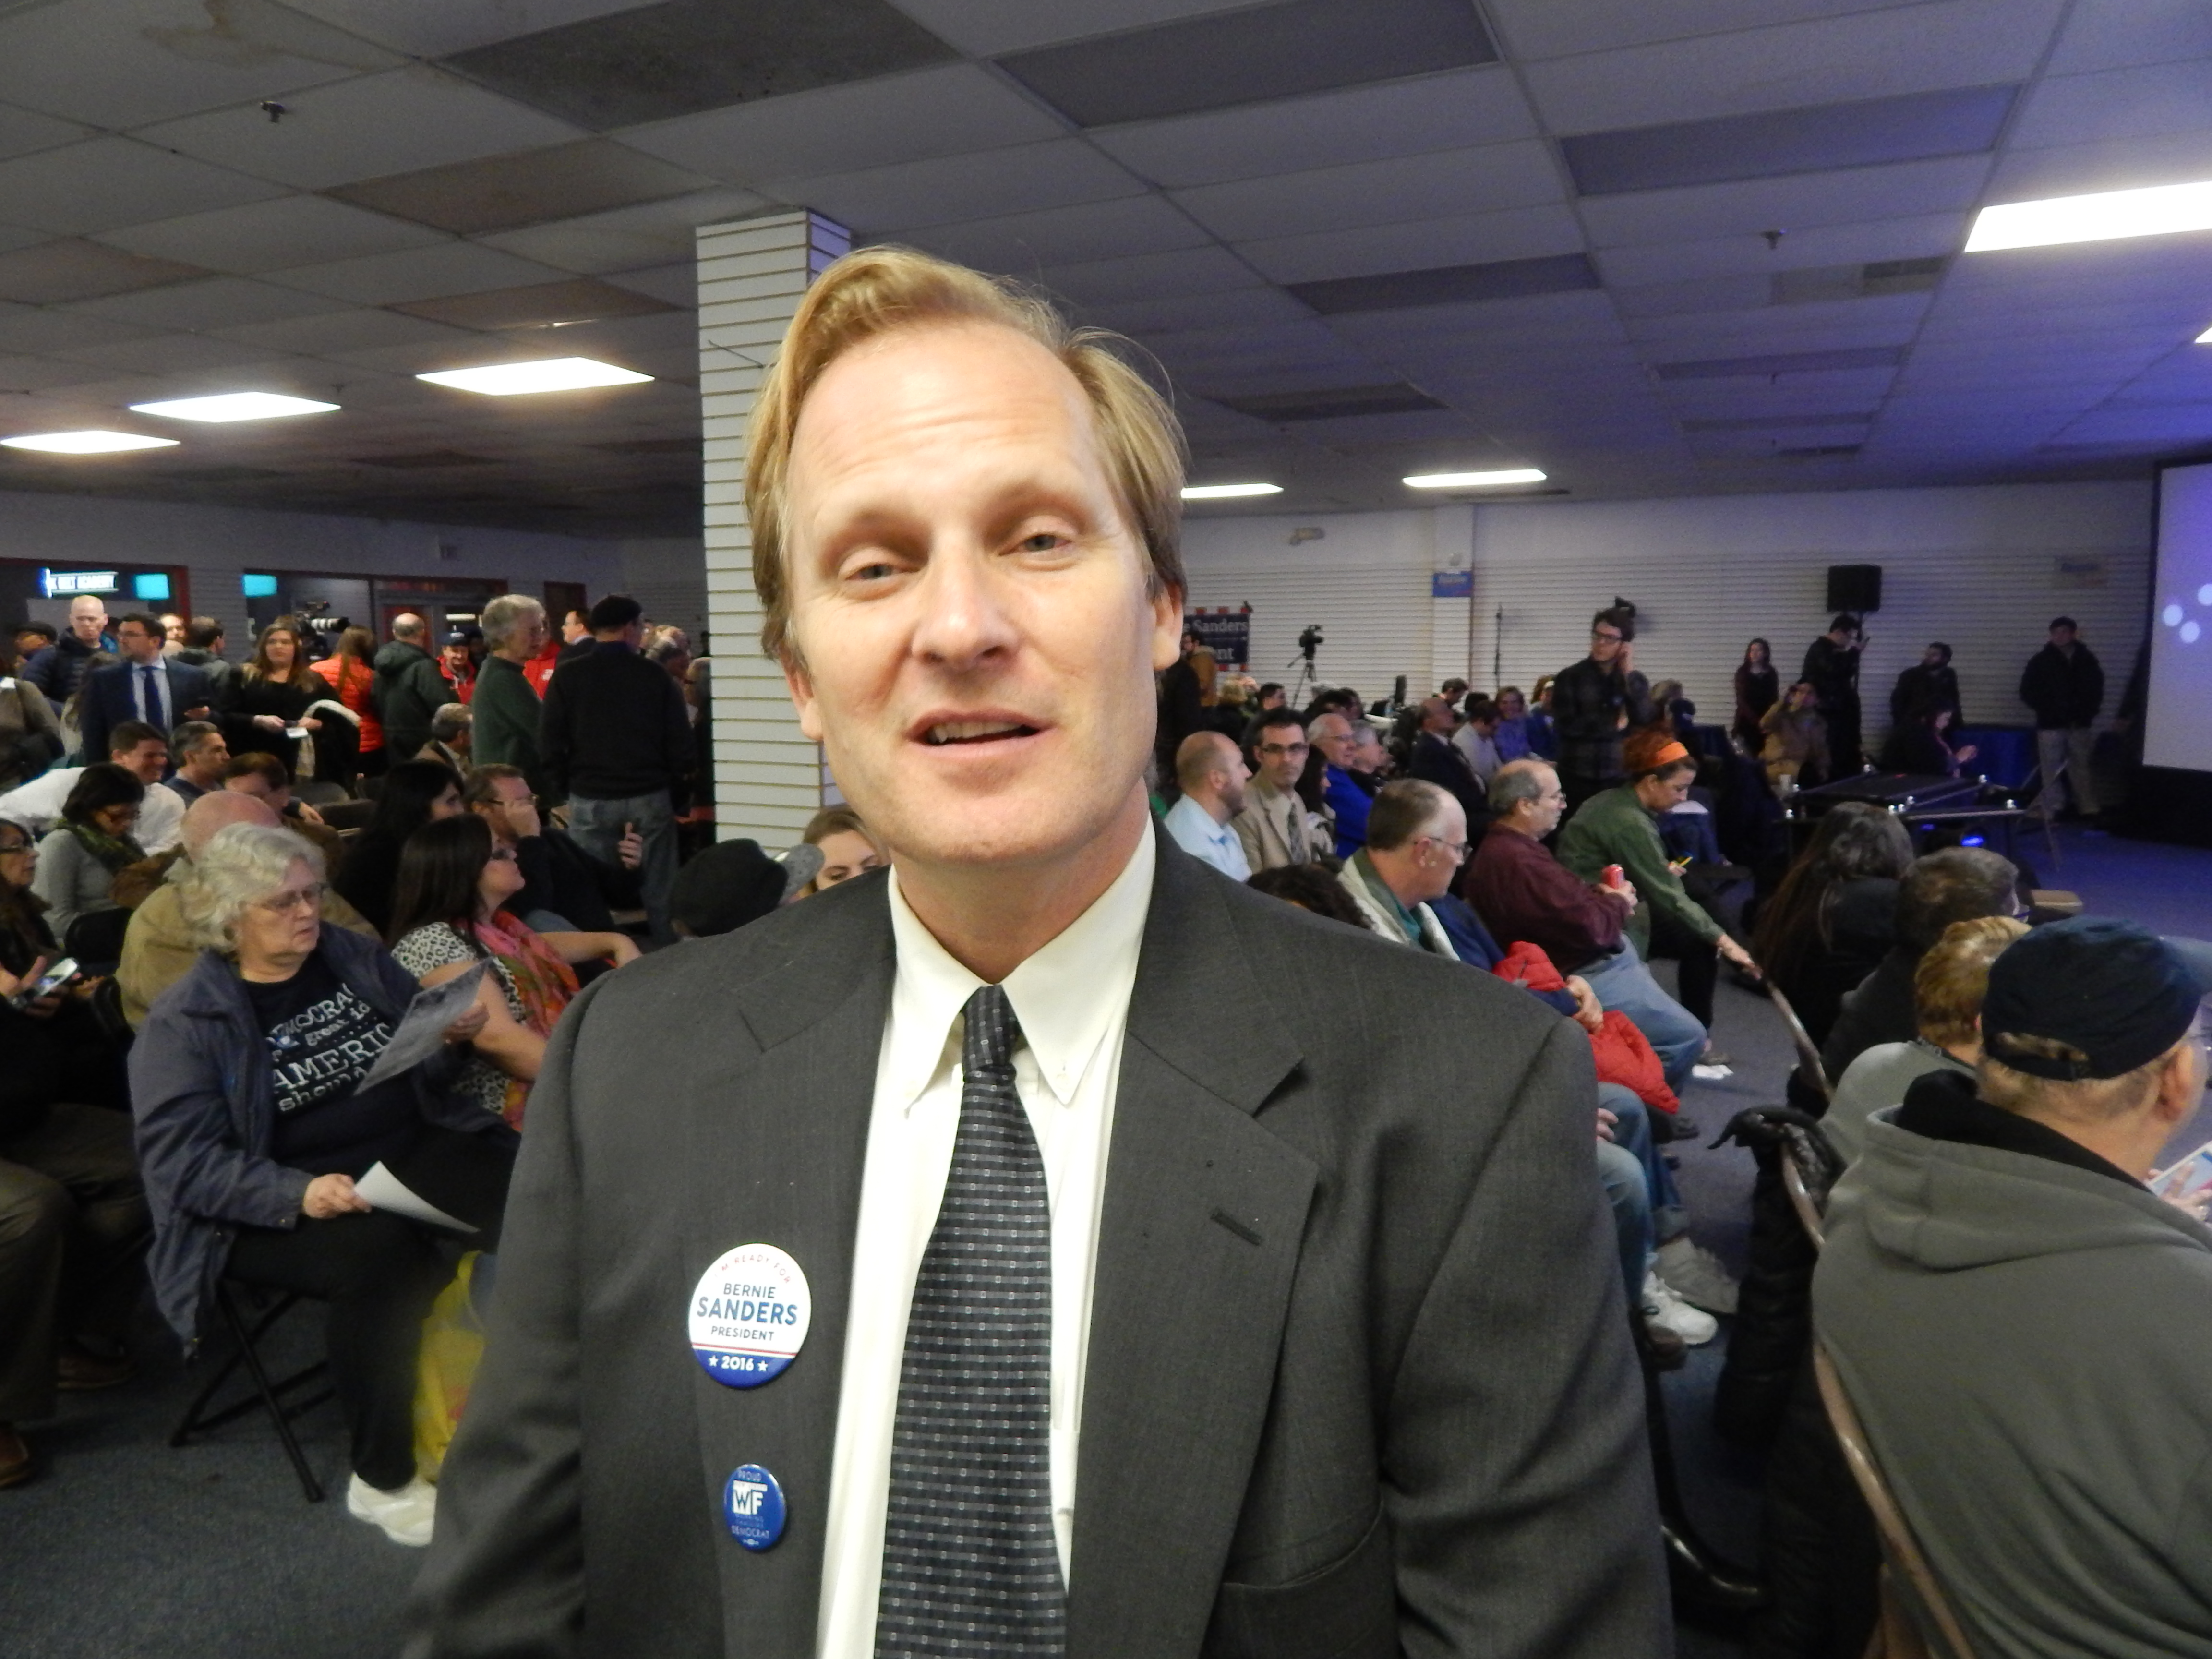 Richard McFarlane is eyeing the 11th congressional district.